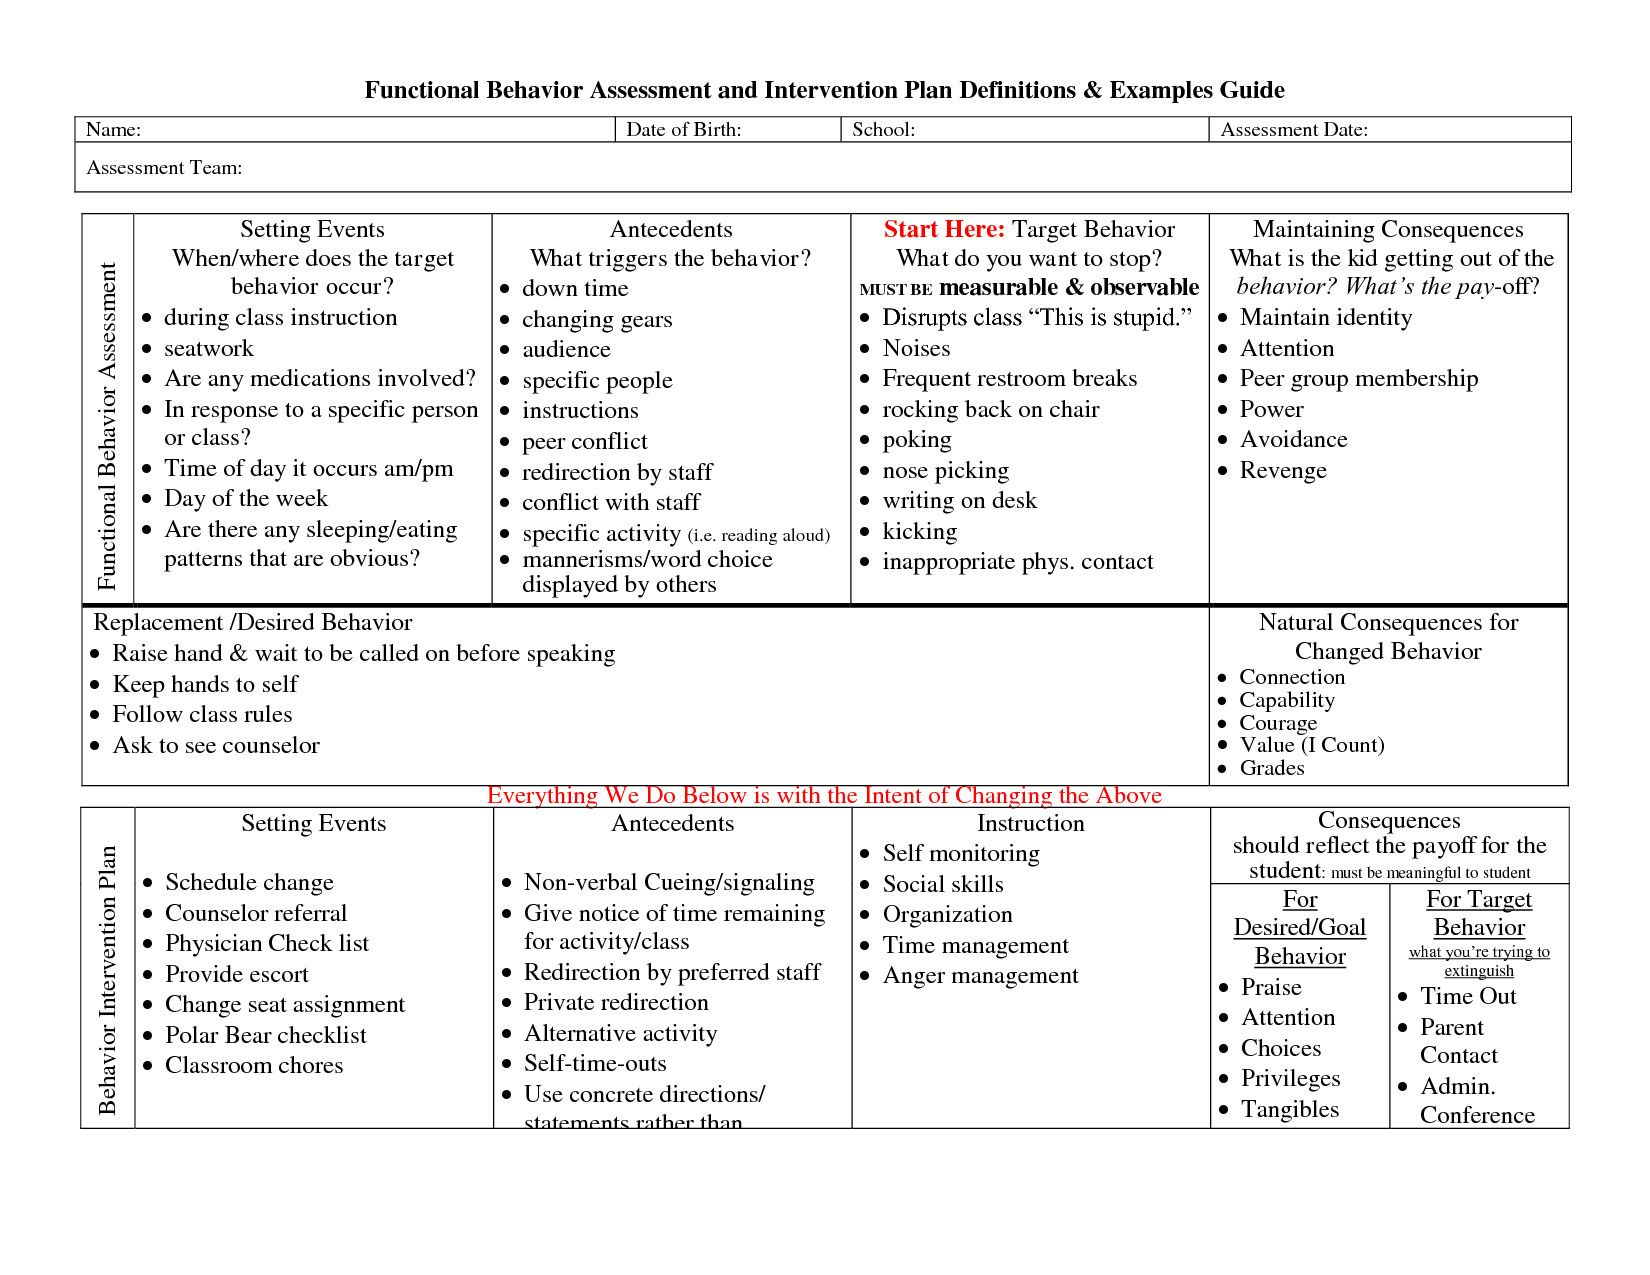 Behavior Intervention Plan Template Up To Date 012 Plan Template Behaviour Astoundi Behavior Intervention Plan Positive Behavior Support Behavior Interventions